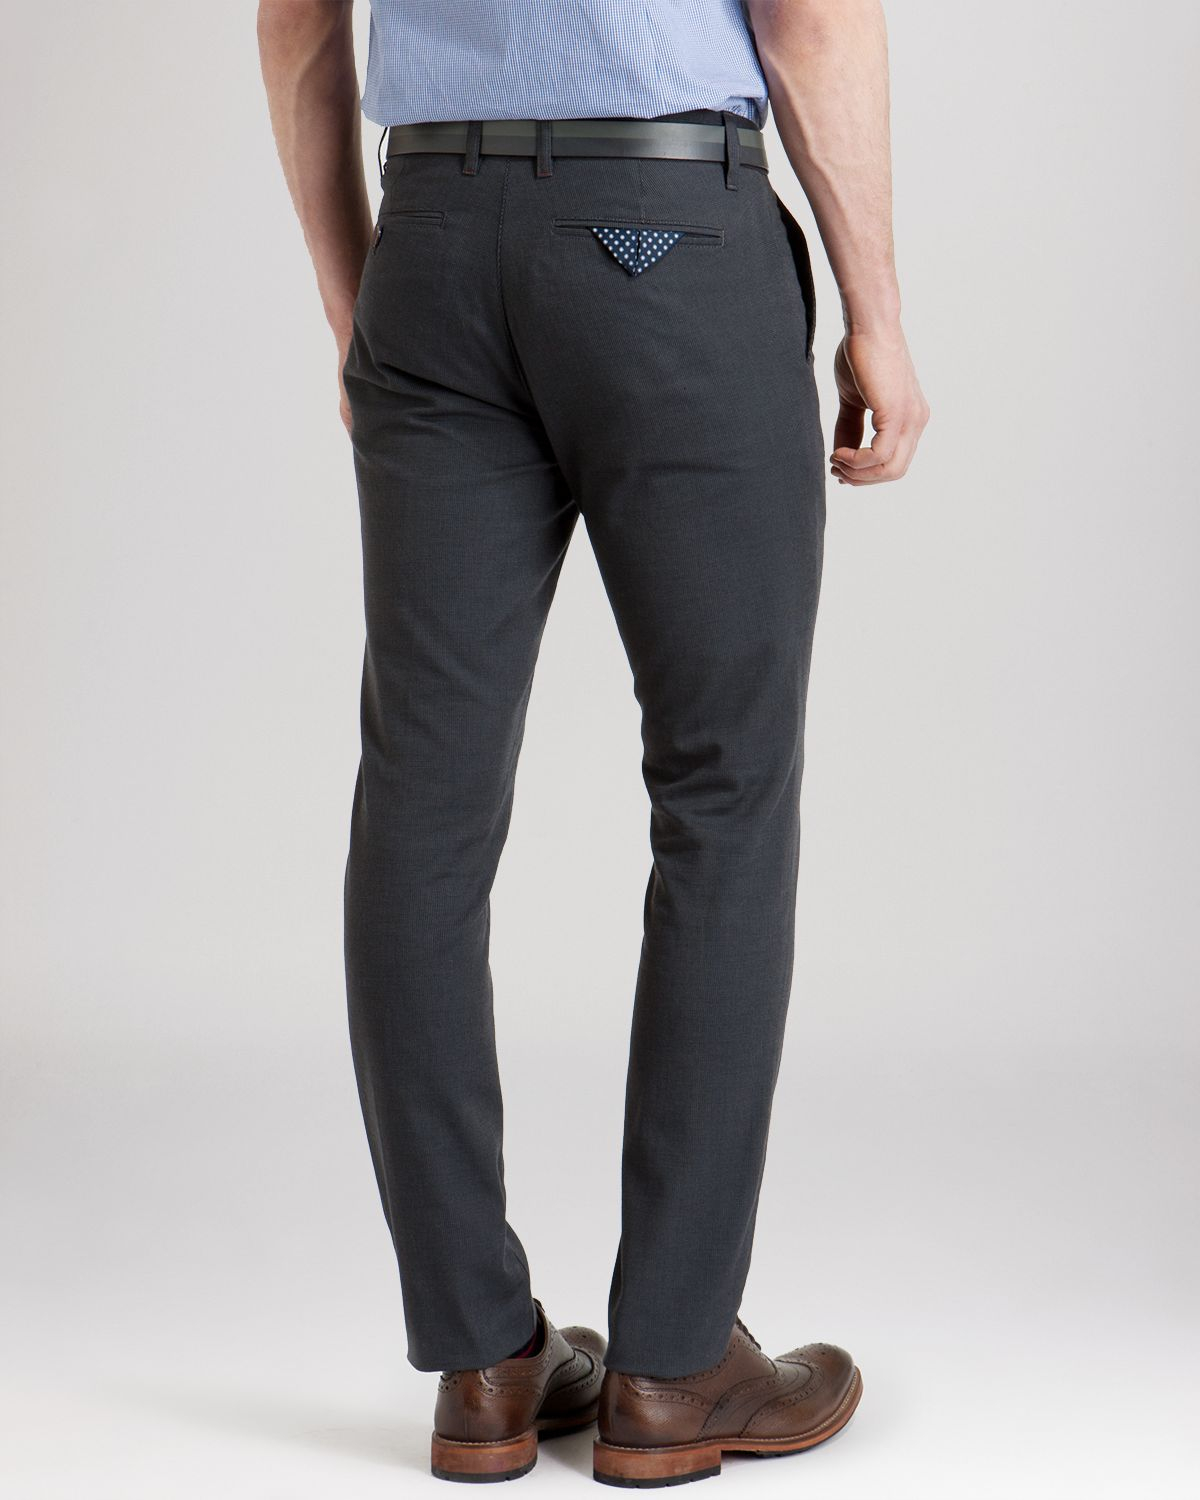 Grey Chinos Men PHOTO CREDIT: Ashley Weston. The Idle Man – Trousers £24 The Idle Man – Suit Trousers £24 What to Wear With Grey Trousers. Grey jeans are a great colour alternative to your usual blue or black. Match some grey jeans and a white T-shirt for a simple casual look.